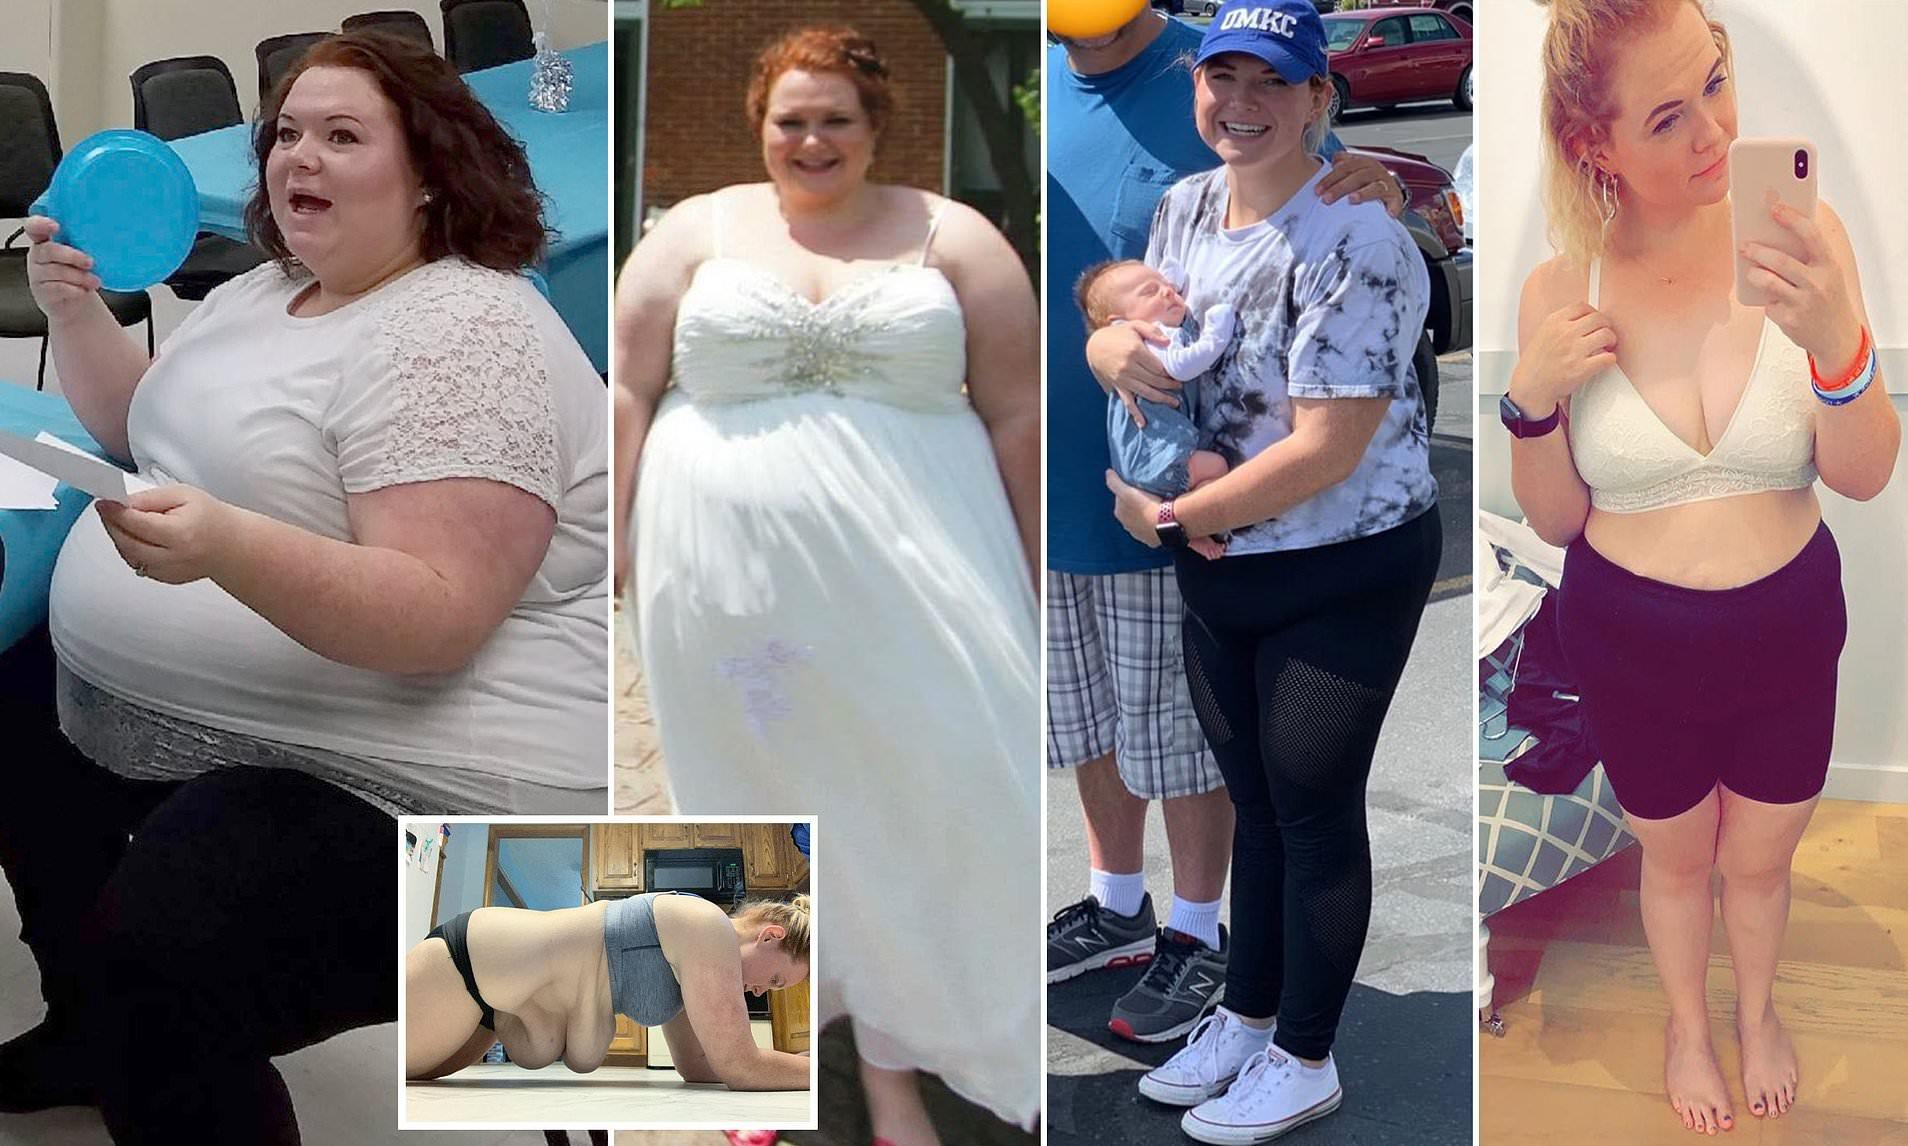 25-Year-Old Woman Loses 200 Pounds After Being Bullied For Years